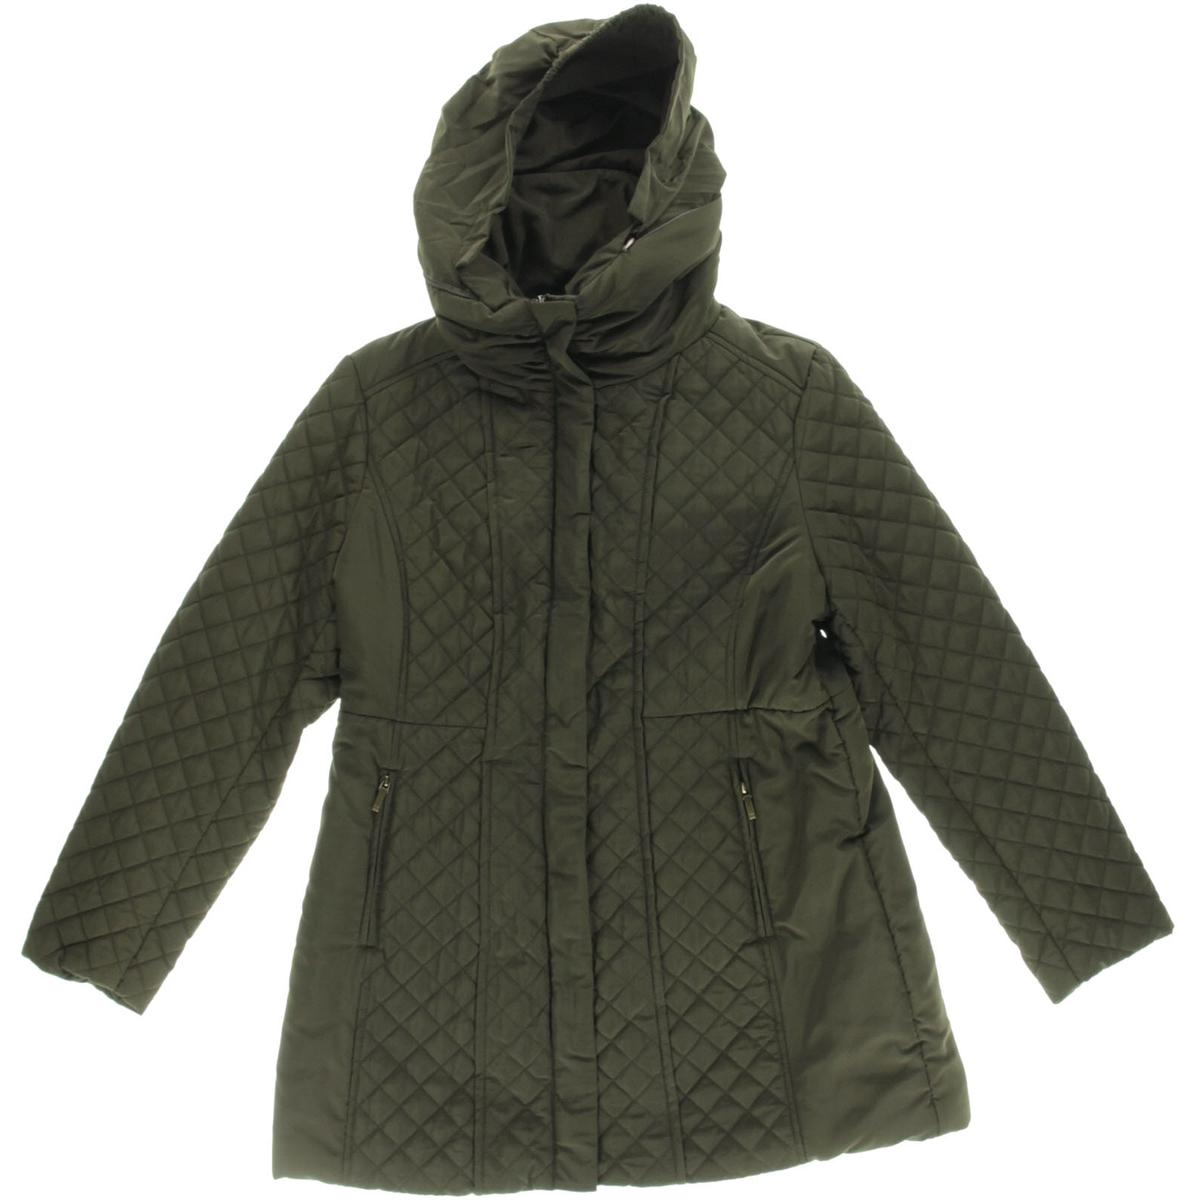 Jones New York 8513 Womens Green Quilted Hooded Outerwear